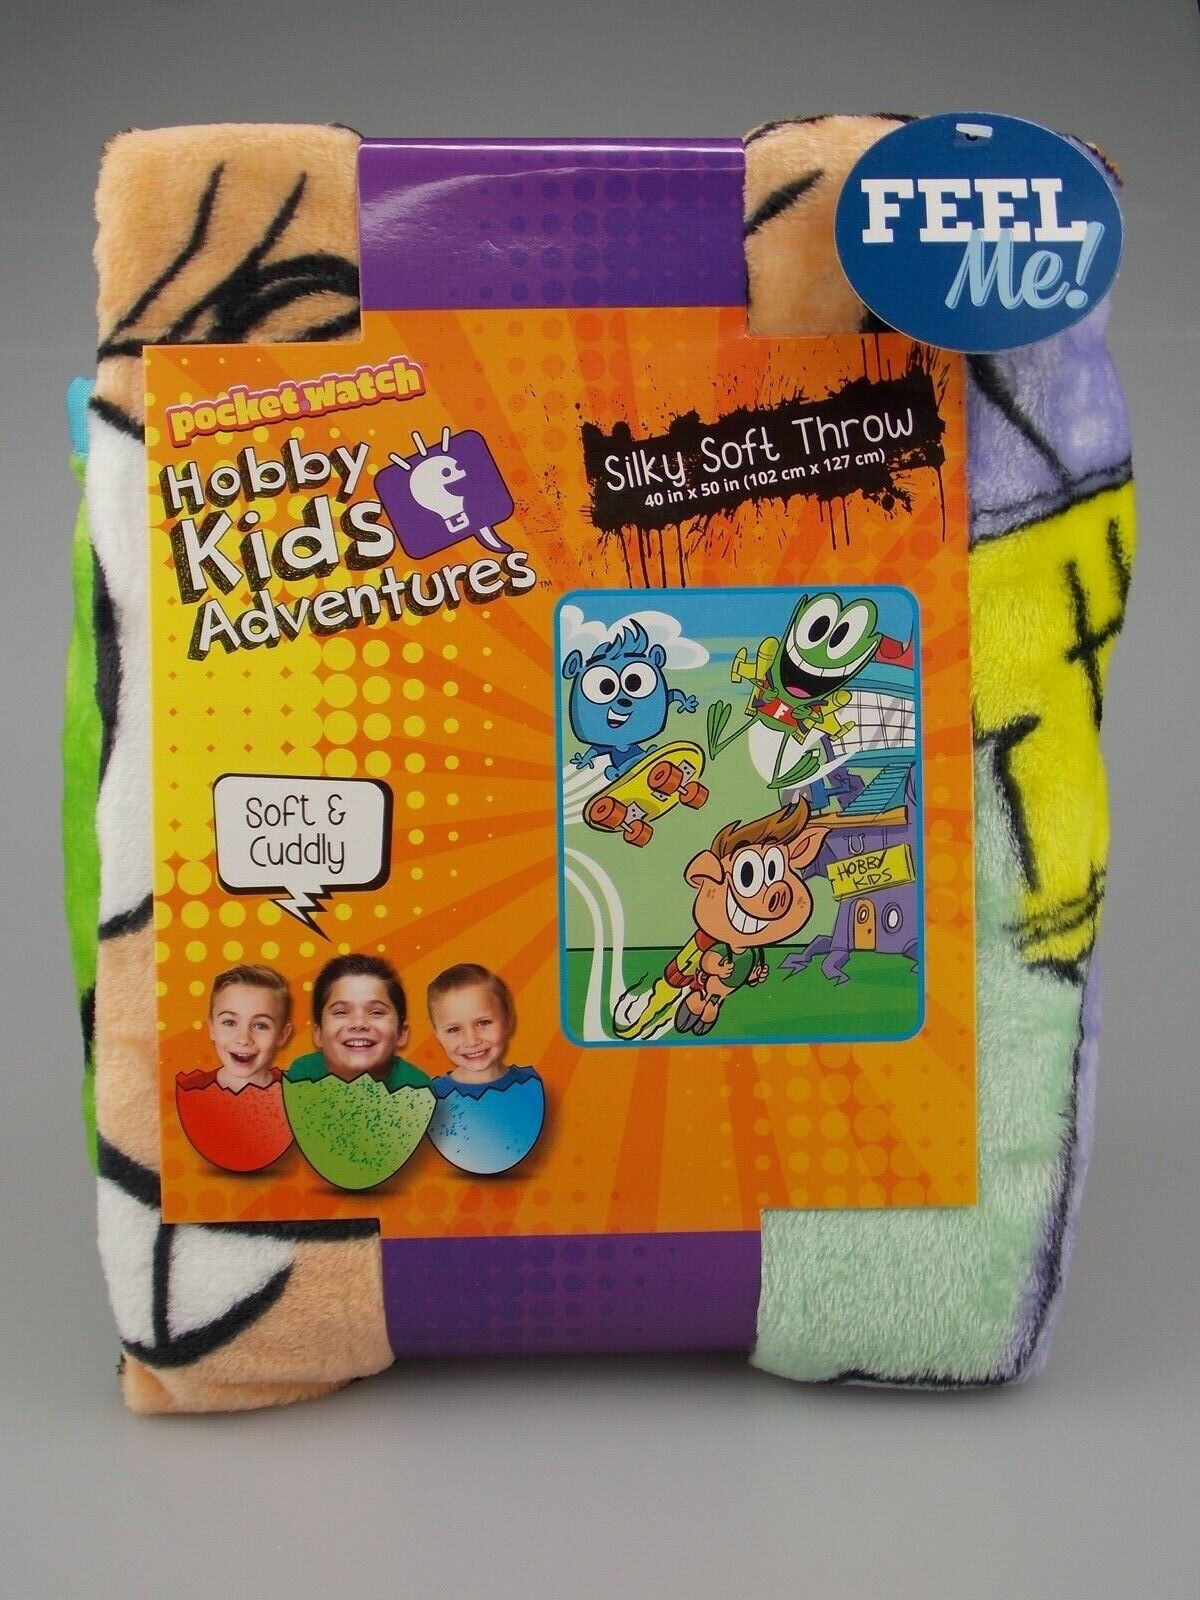 NEW Hobby Kids Adventures TV Silky Soft Throw Blanket 40 X 5